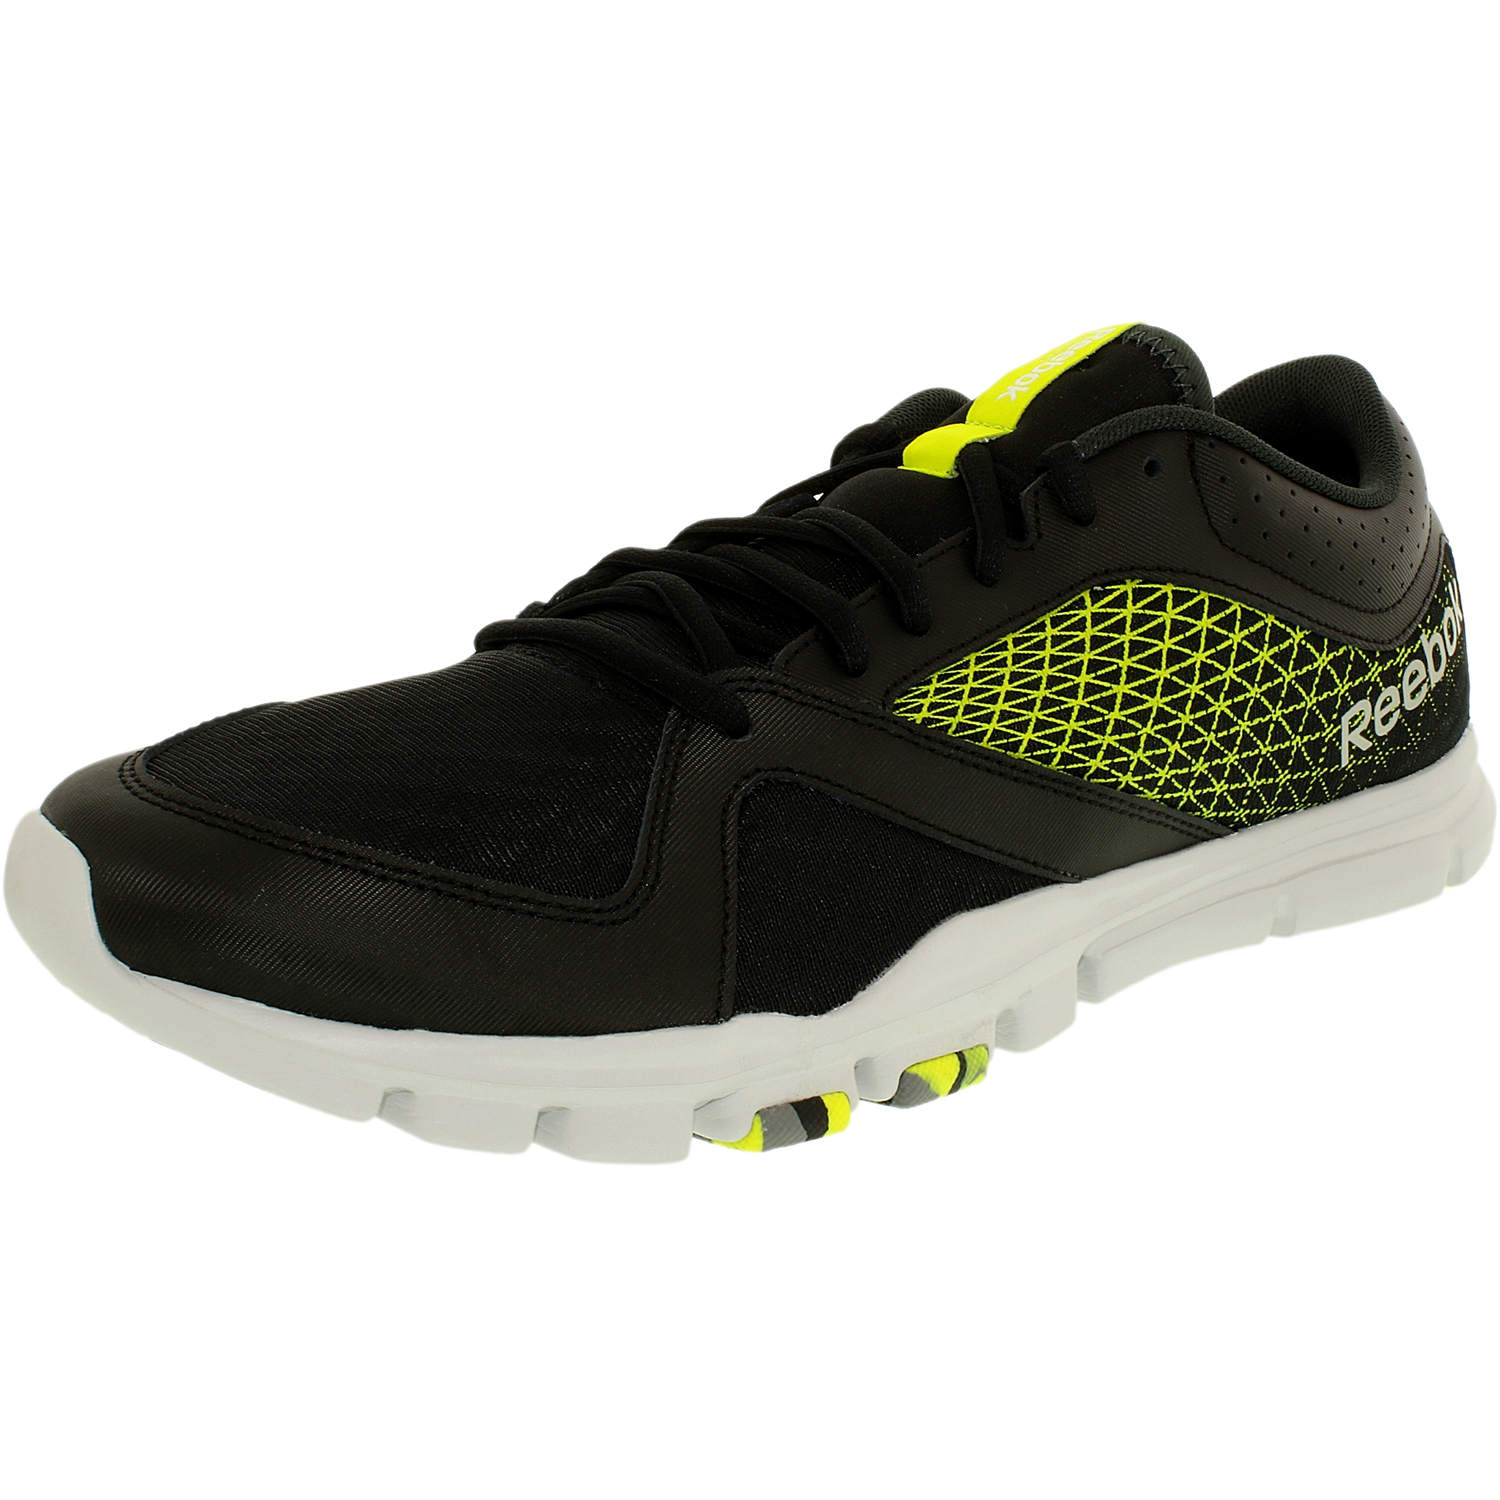 Reebok Men's Yourflex Train 7.0 Lmt Ankle-High Synthetic Running Shoe